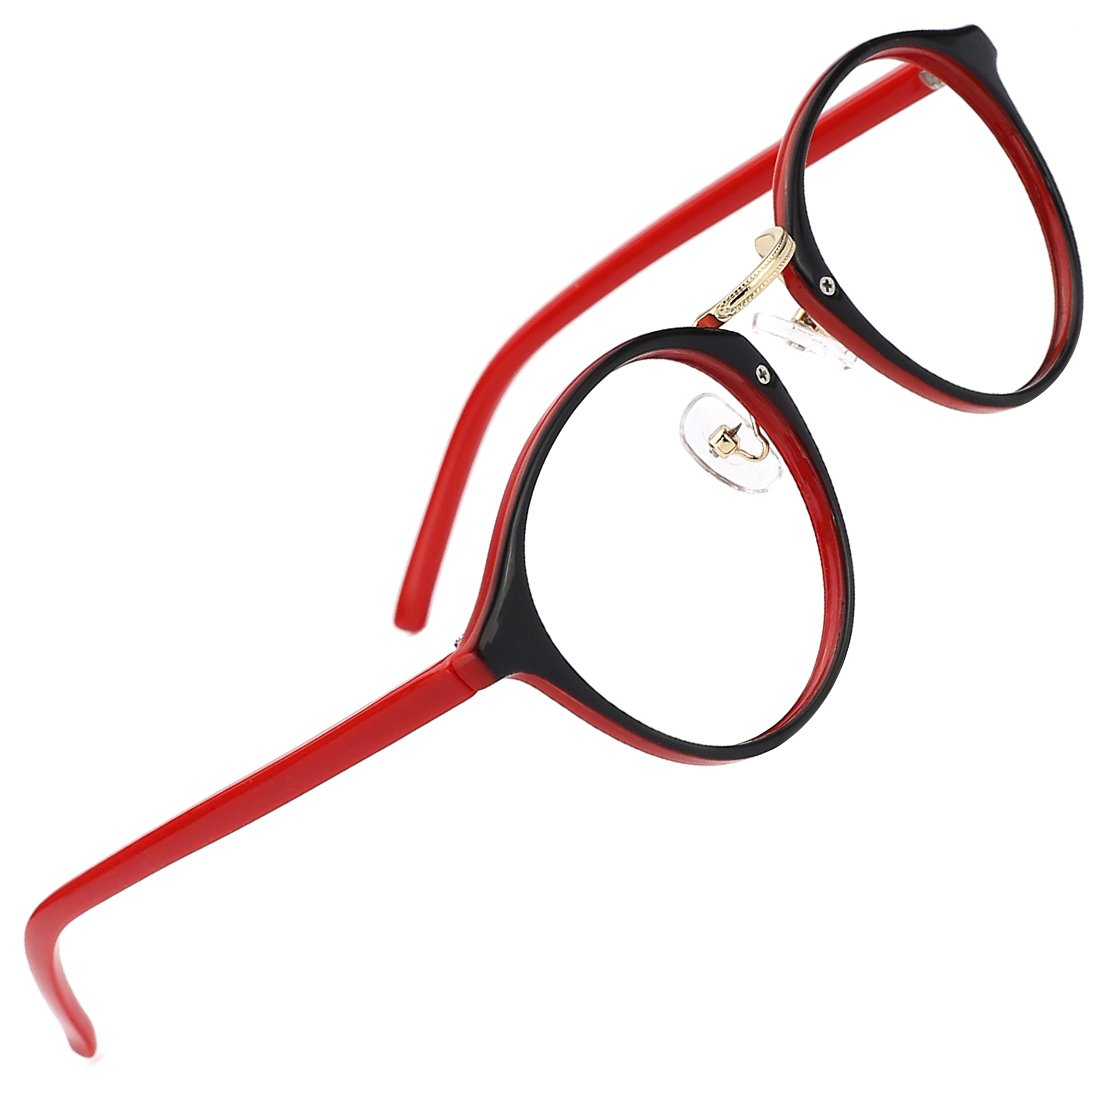 Slocyclub Fashion Round Eyewear Frame Eyeglasses Optical Frame Clear Lens Glasses 00063306